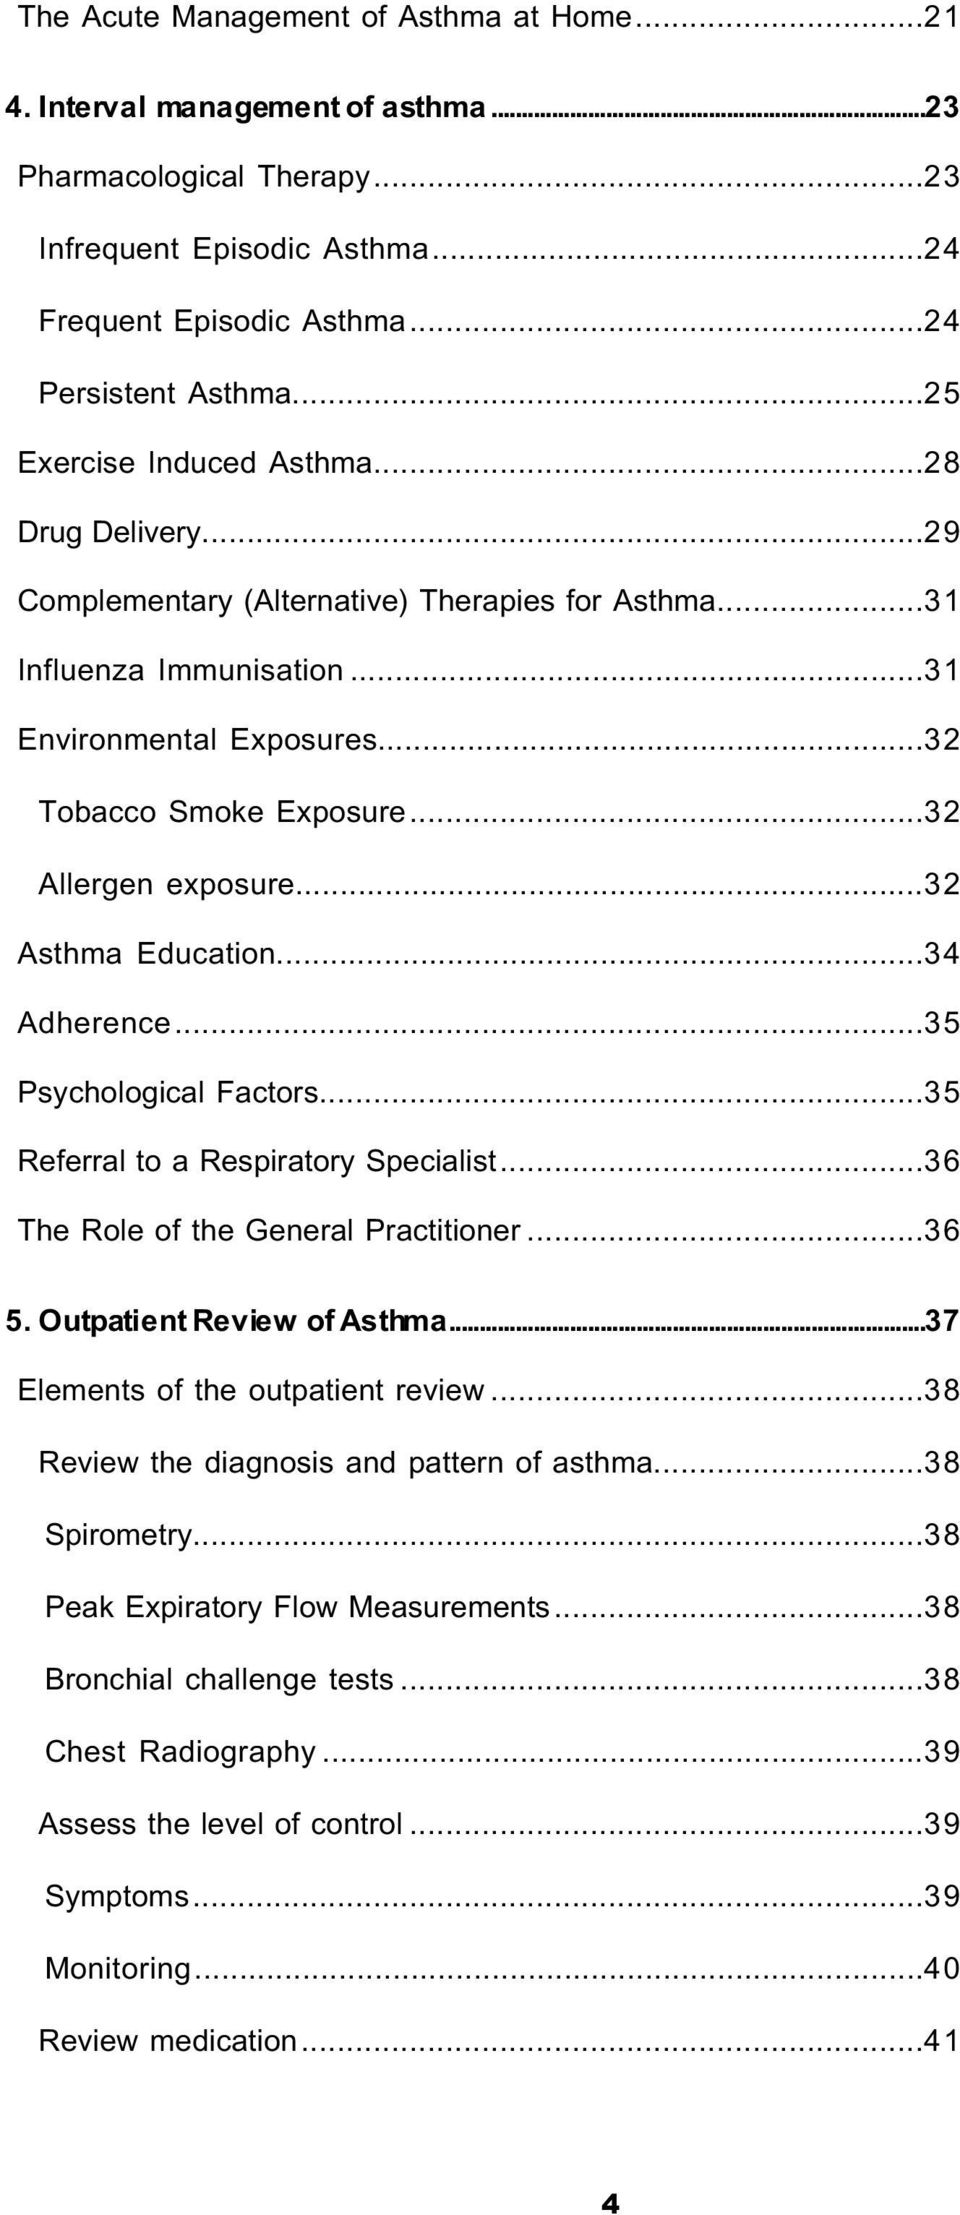 ..32 Allergen exposure...32 Asthma Education...34 Adherence...35 Psychological Factors...35 Referral to a Respiratory Specialist...36 The Role of the General Practitioner...36 5.